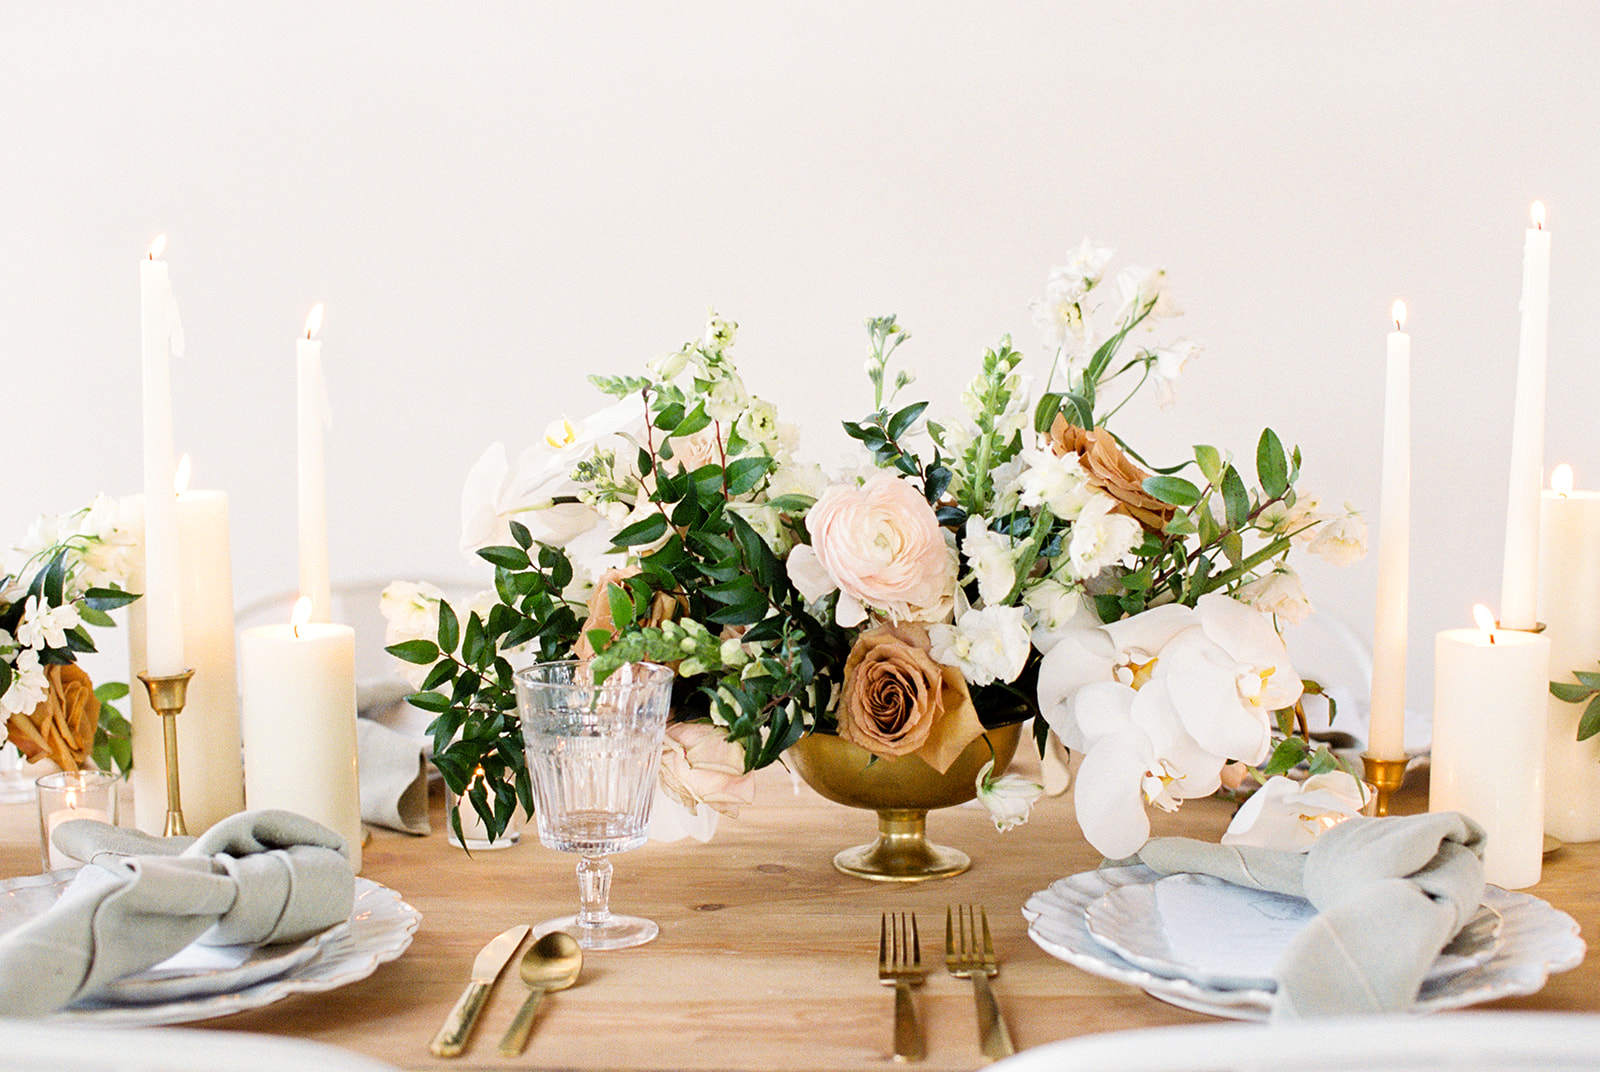 Monochromatic Gold and White Wedding Centerpiece